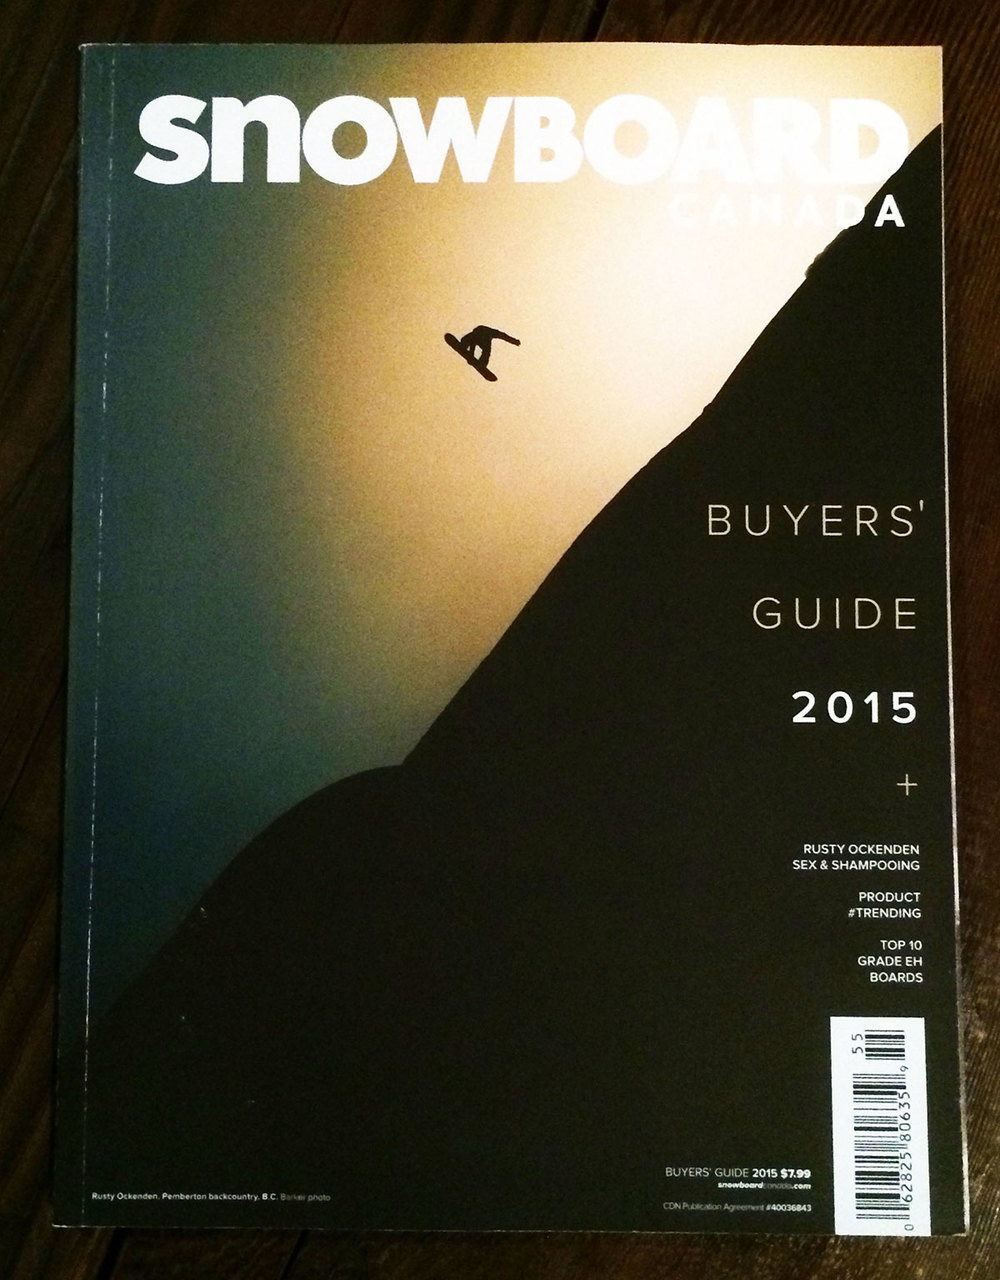 Rusty Ockenden Cover, Pemberton backcountry, B.C. Baker Photo